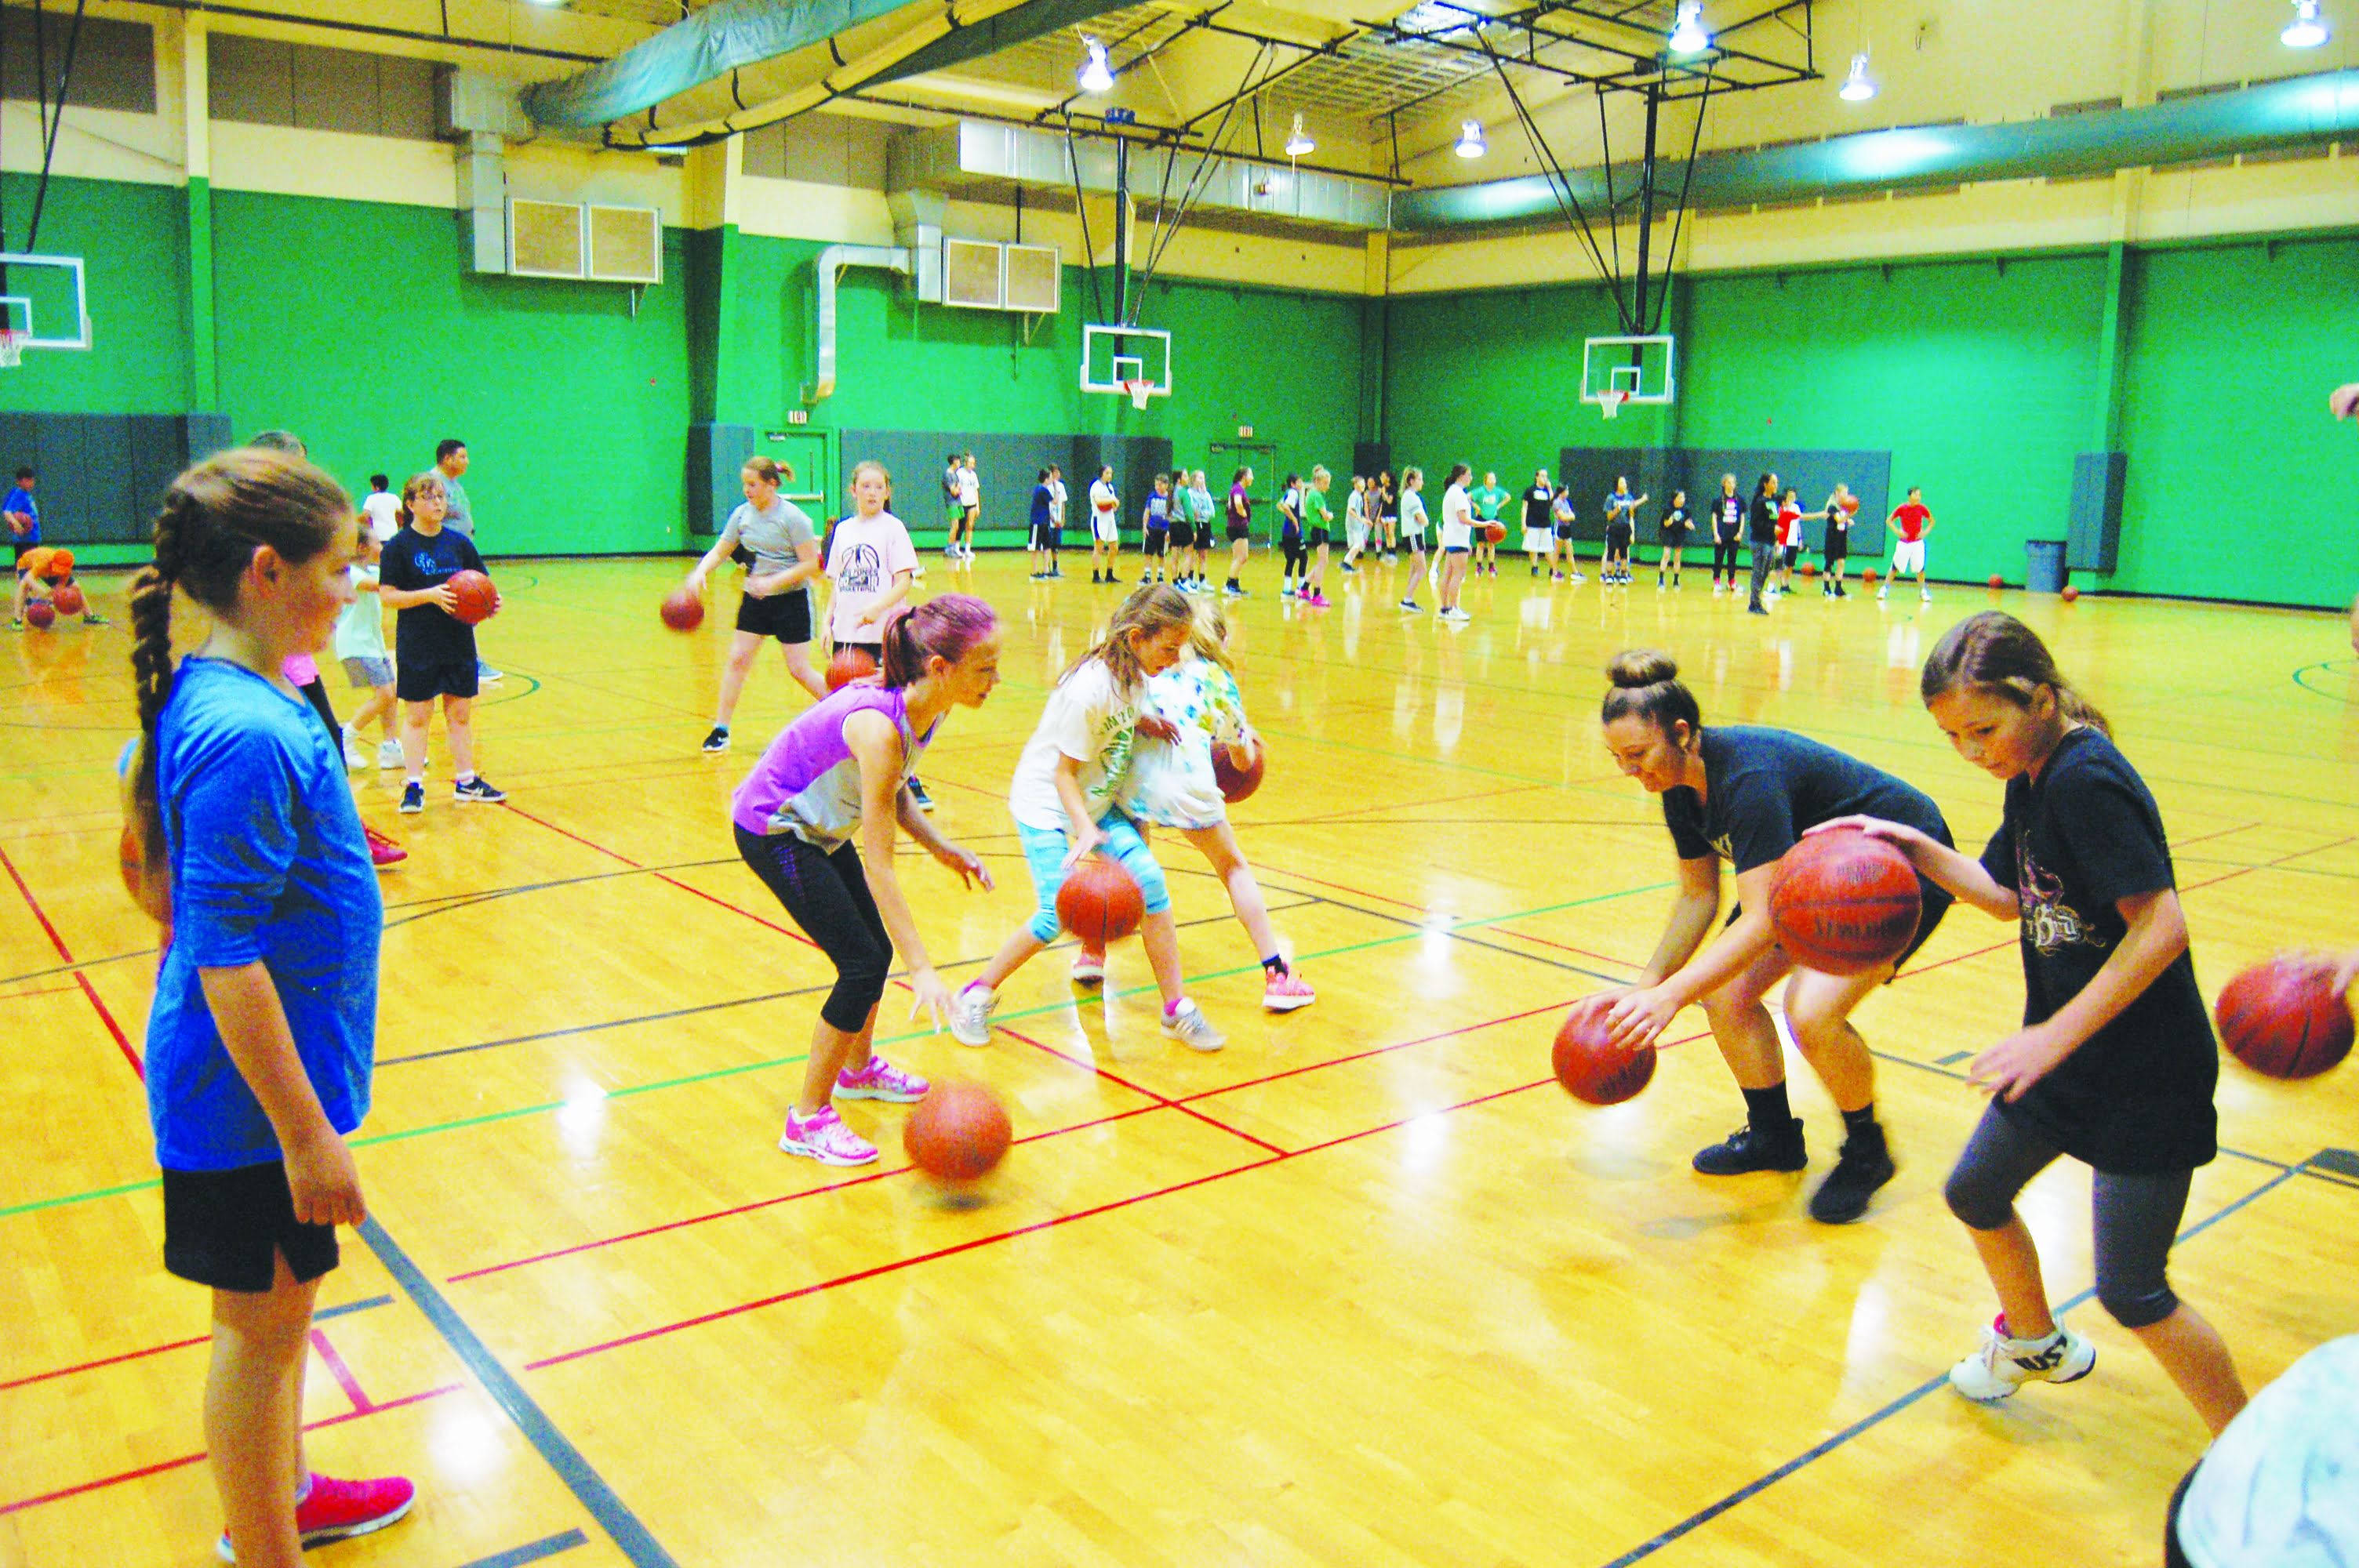 Little Pintos Basketball Camp:  'A great opportunity' for campers and high school players